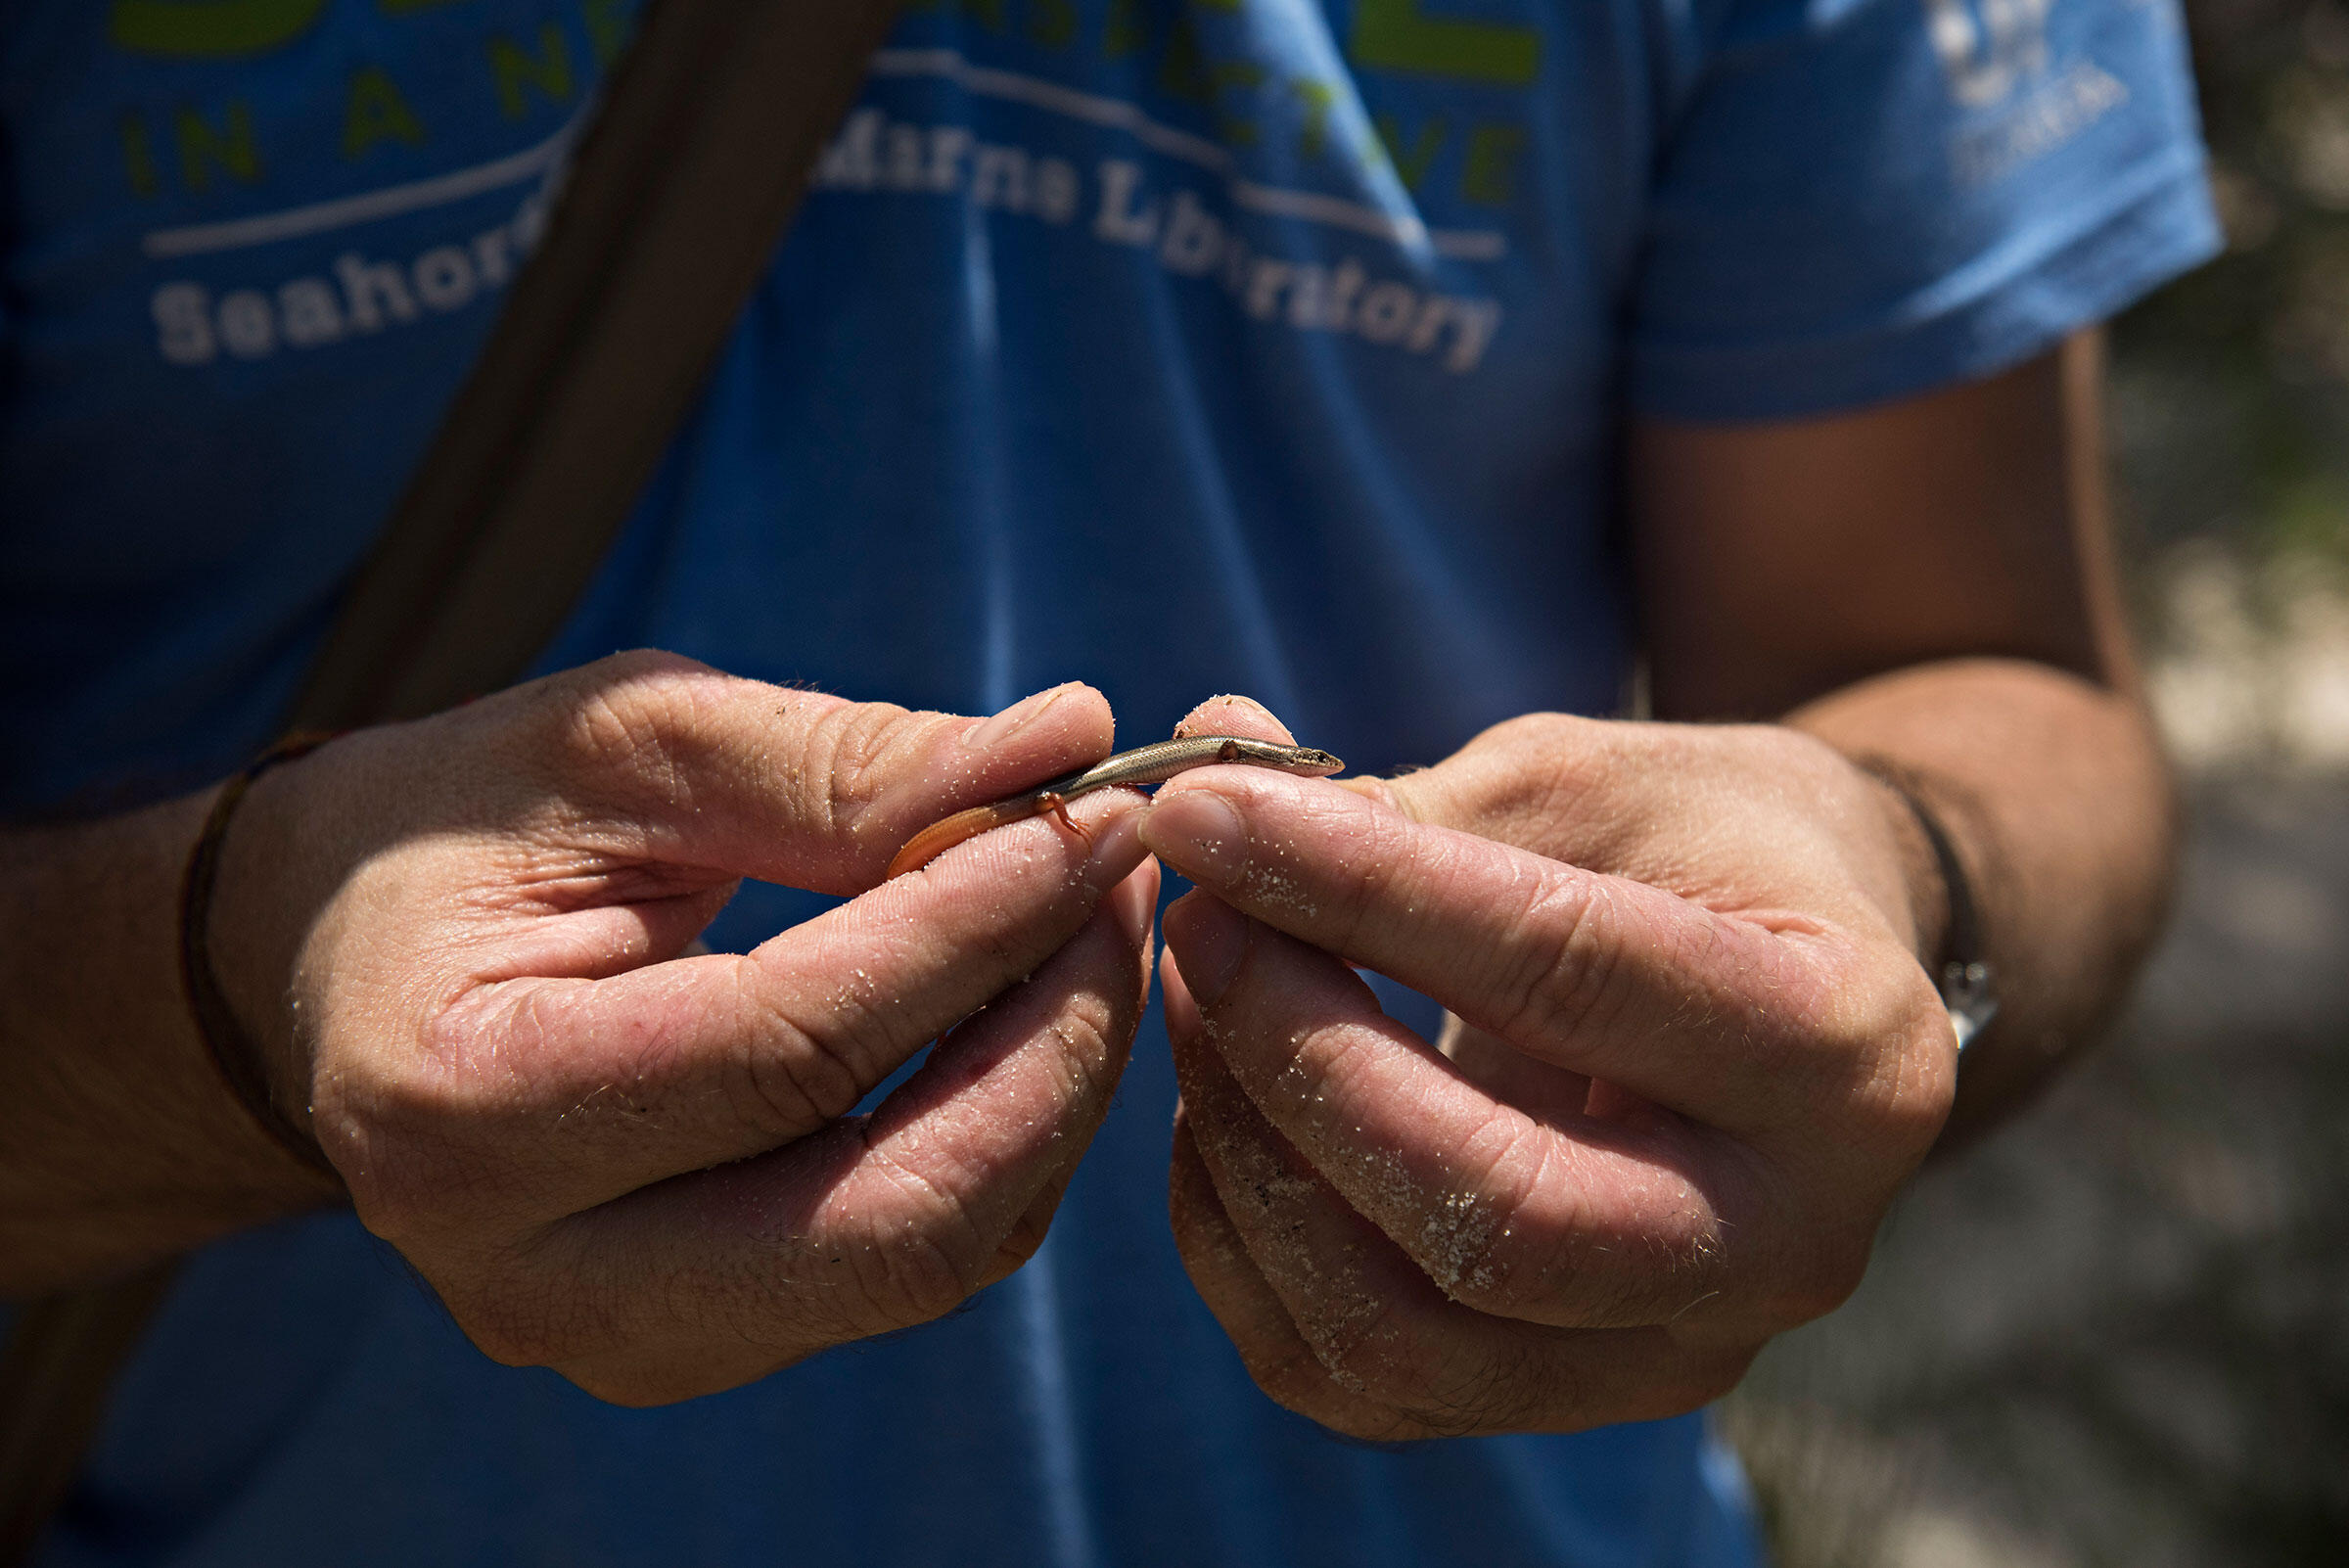 Herpetologist Coleman Sheehy III holds a Cedar Key mole skink, a rare species found on Seahorse Key that, like the island's once-robust cottonmouth population, may feel the cascading effects of the birds' absence. Melissa Lyttle